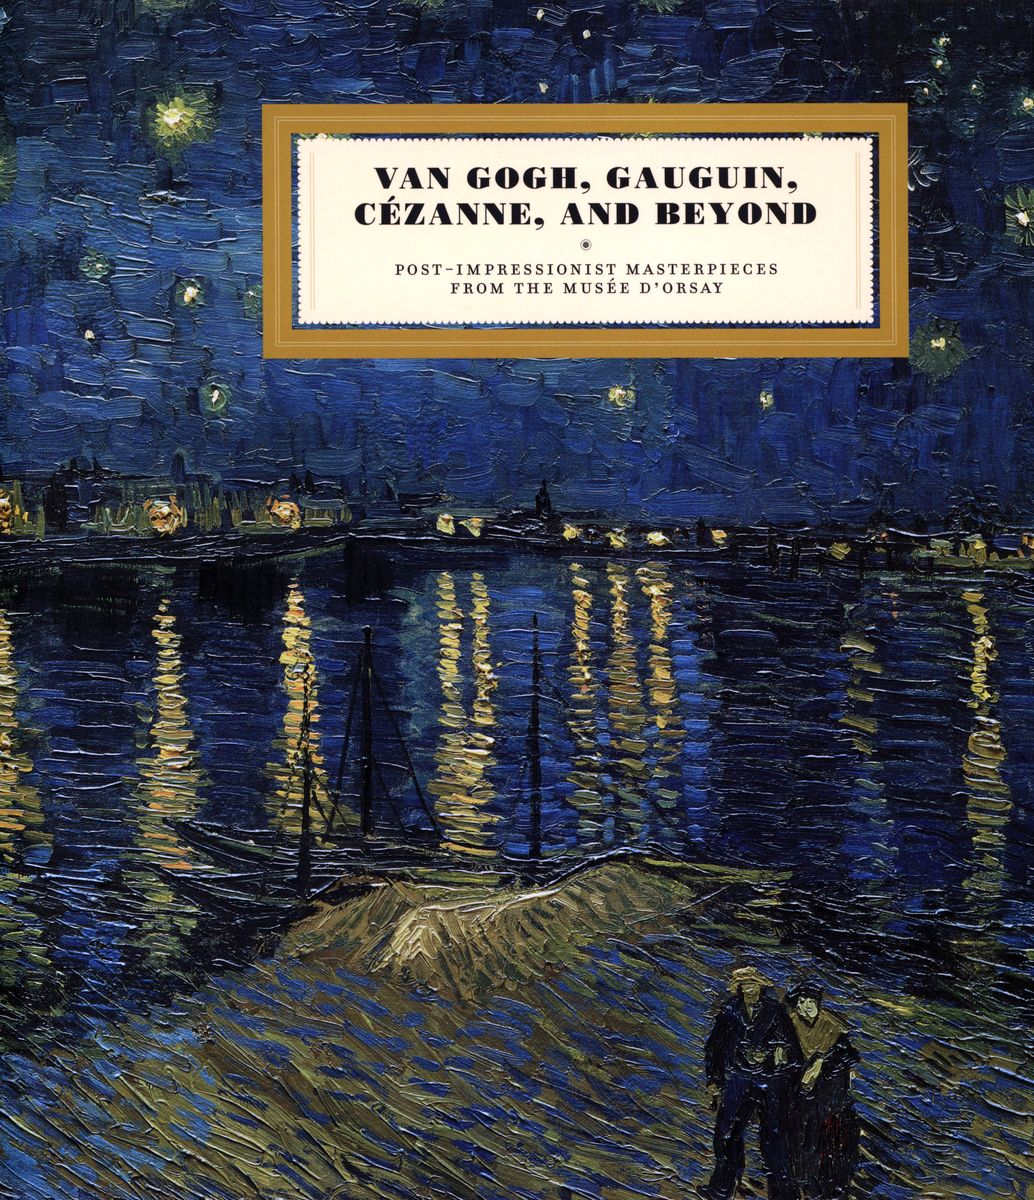 Van Gogh, Gauguin, C?zanne, and Beyond. Post-Impressionist Masterpieces from the Mus?e d'Orsay по 2 416.00 руб от изд. Prestel